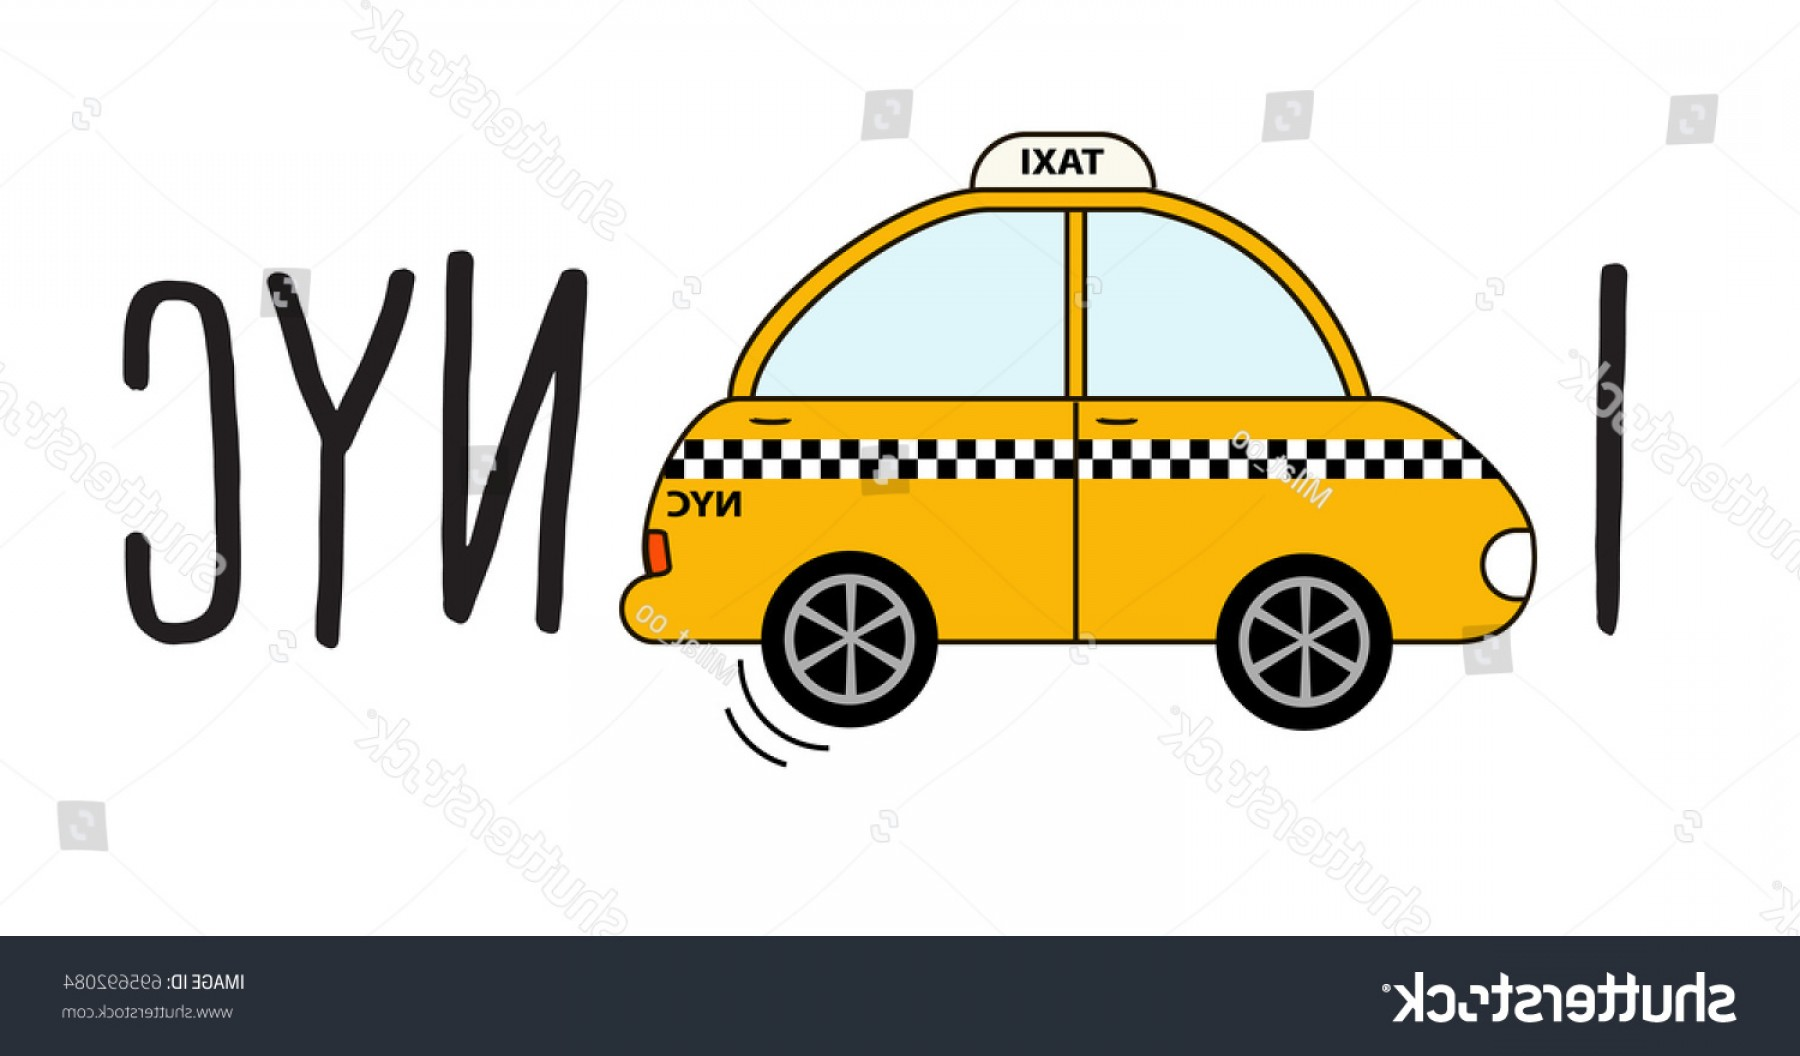 New York Taxi Cab Vector: New York City Taxi Clipart